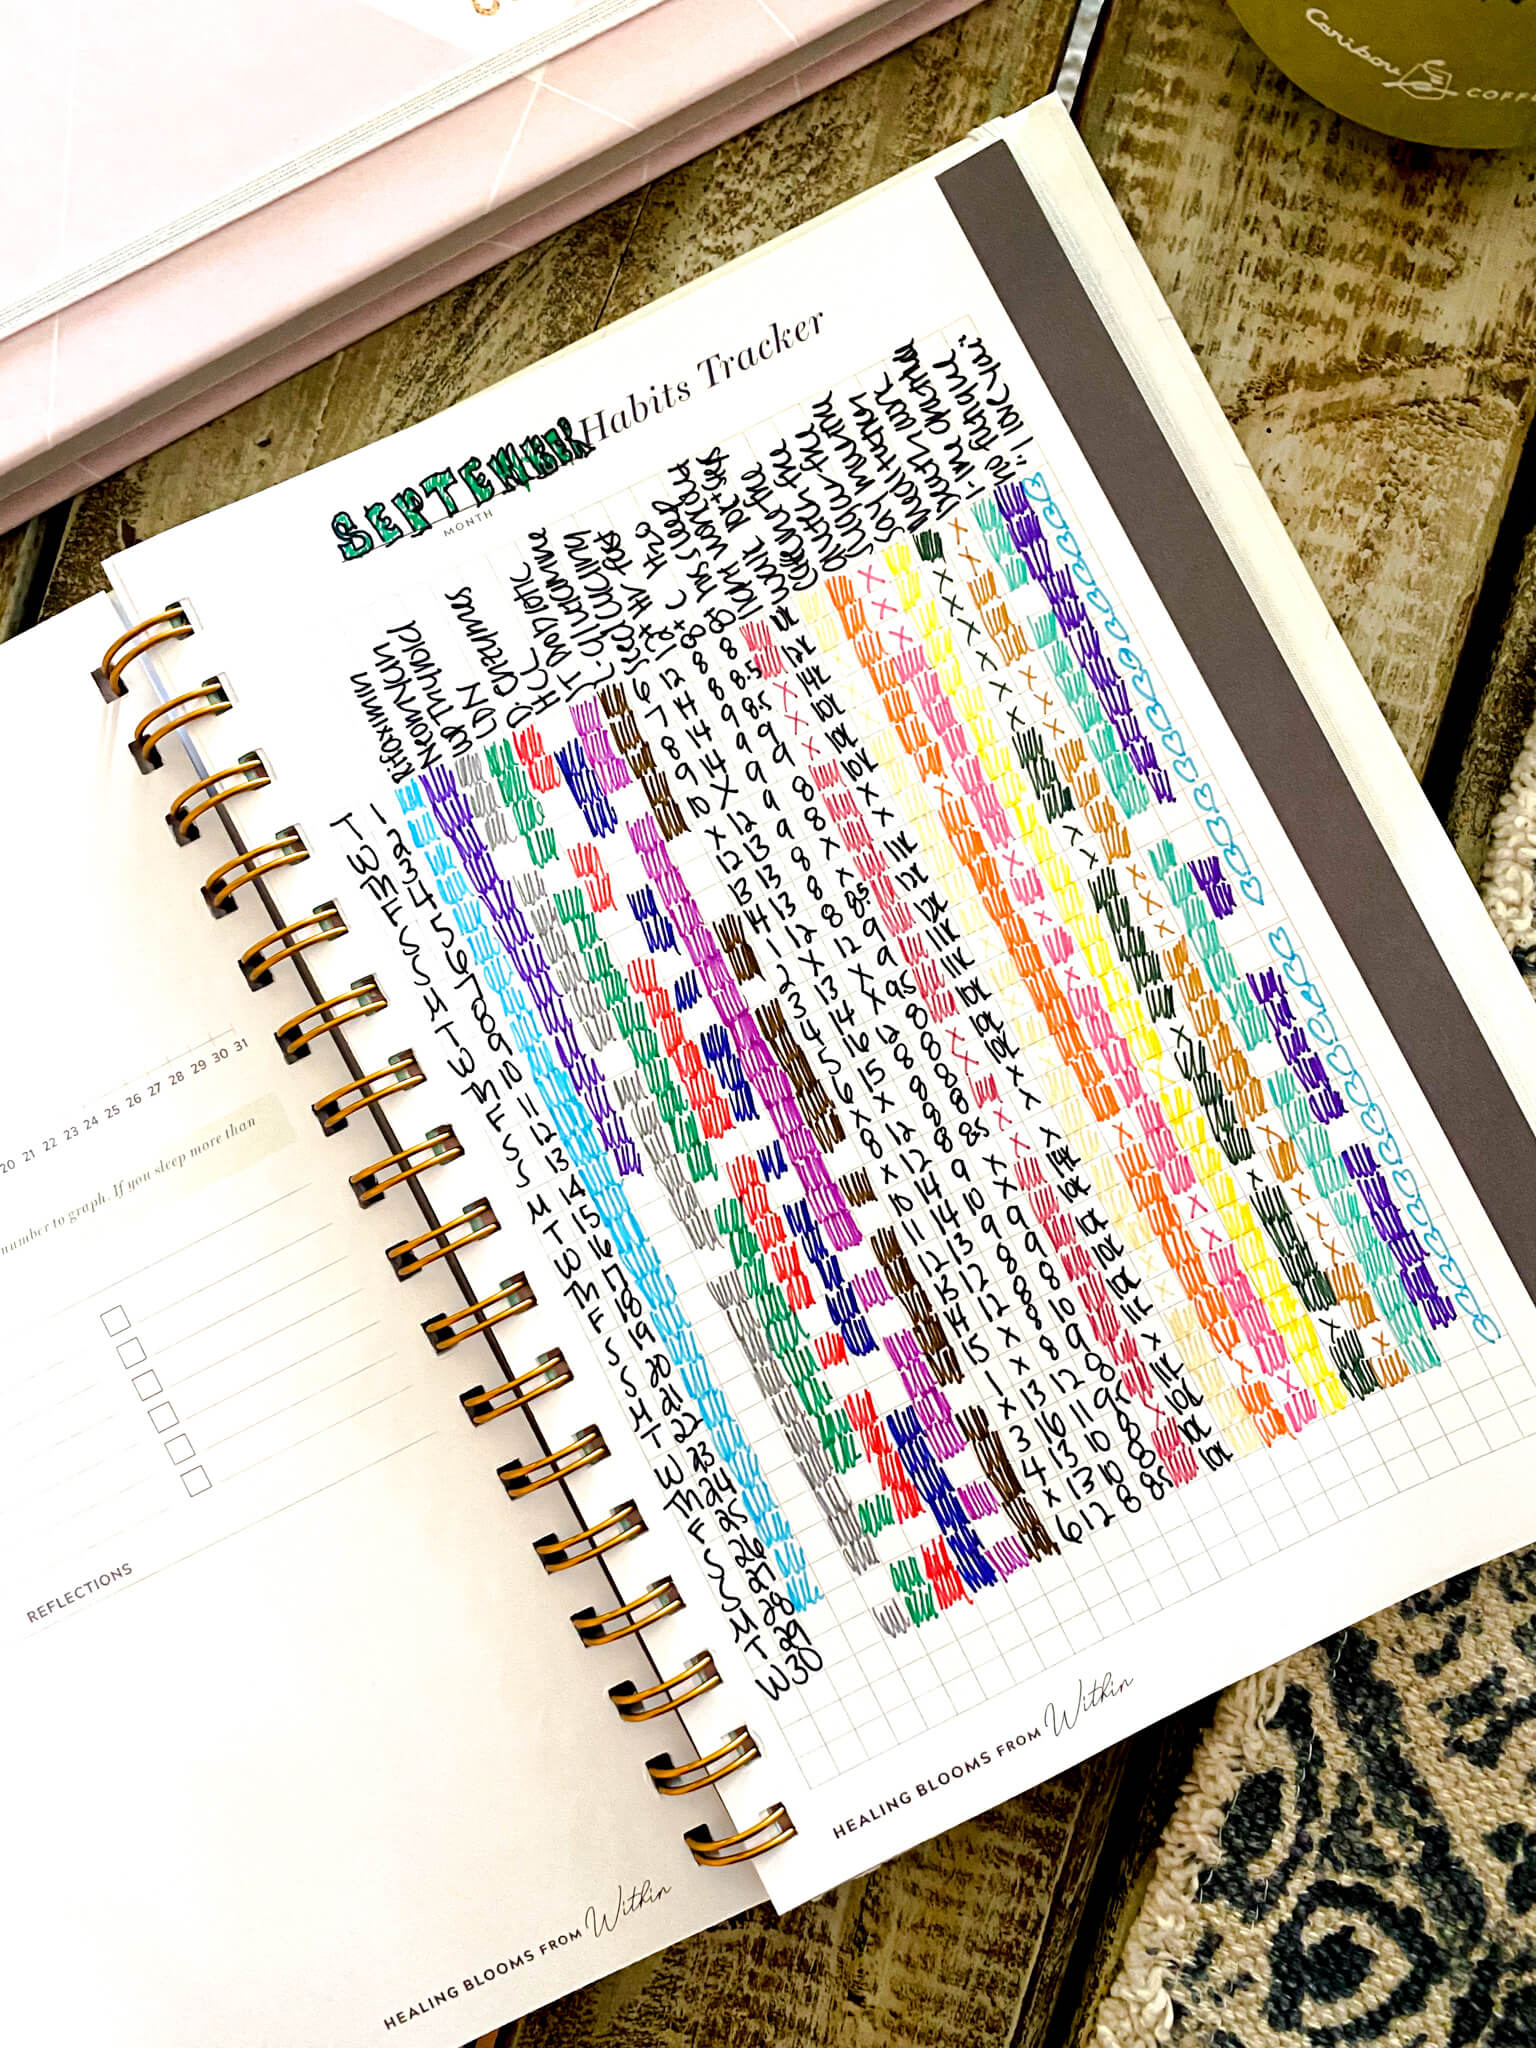 34 gut health and healing habits to track in your bullet journal agutsygirl.com #guthealing #foodjournal #eliminationdiet #healthlog #newyear